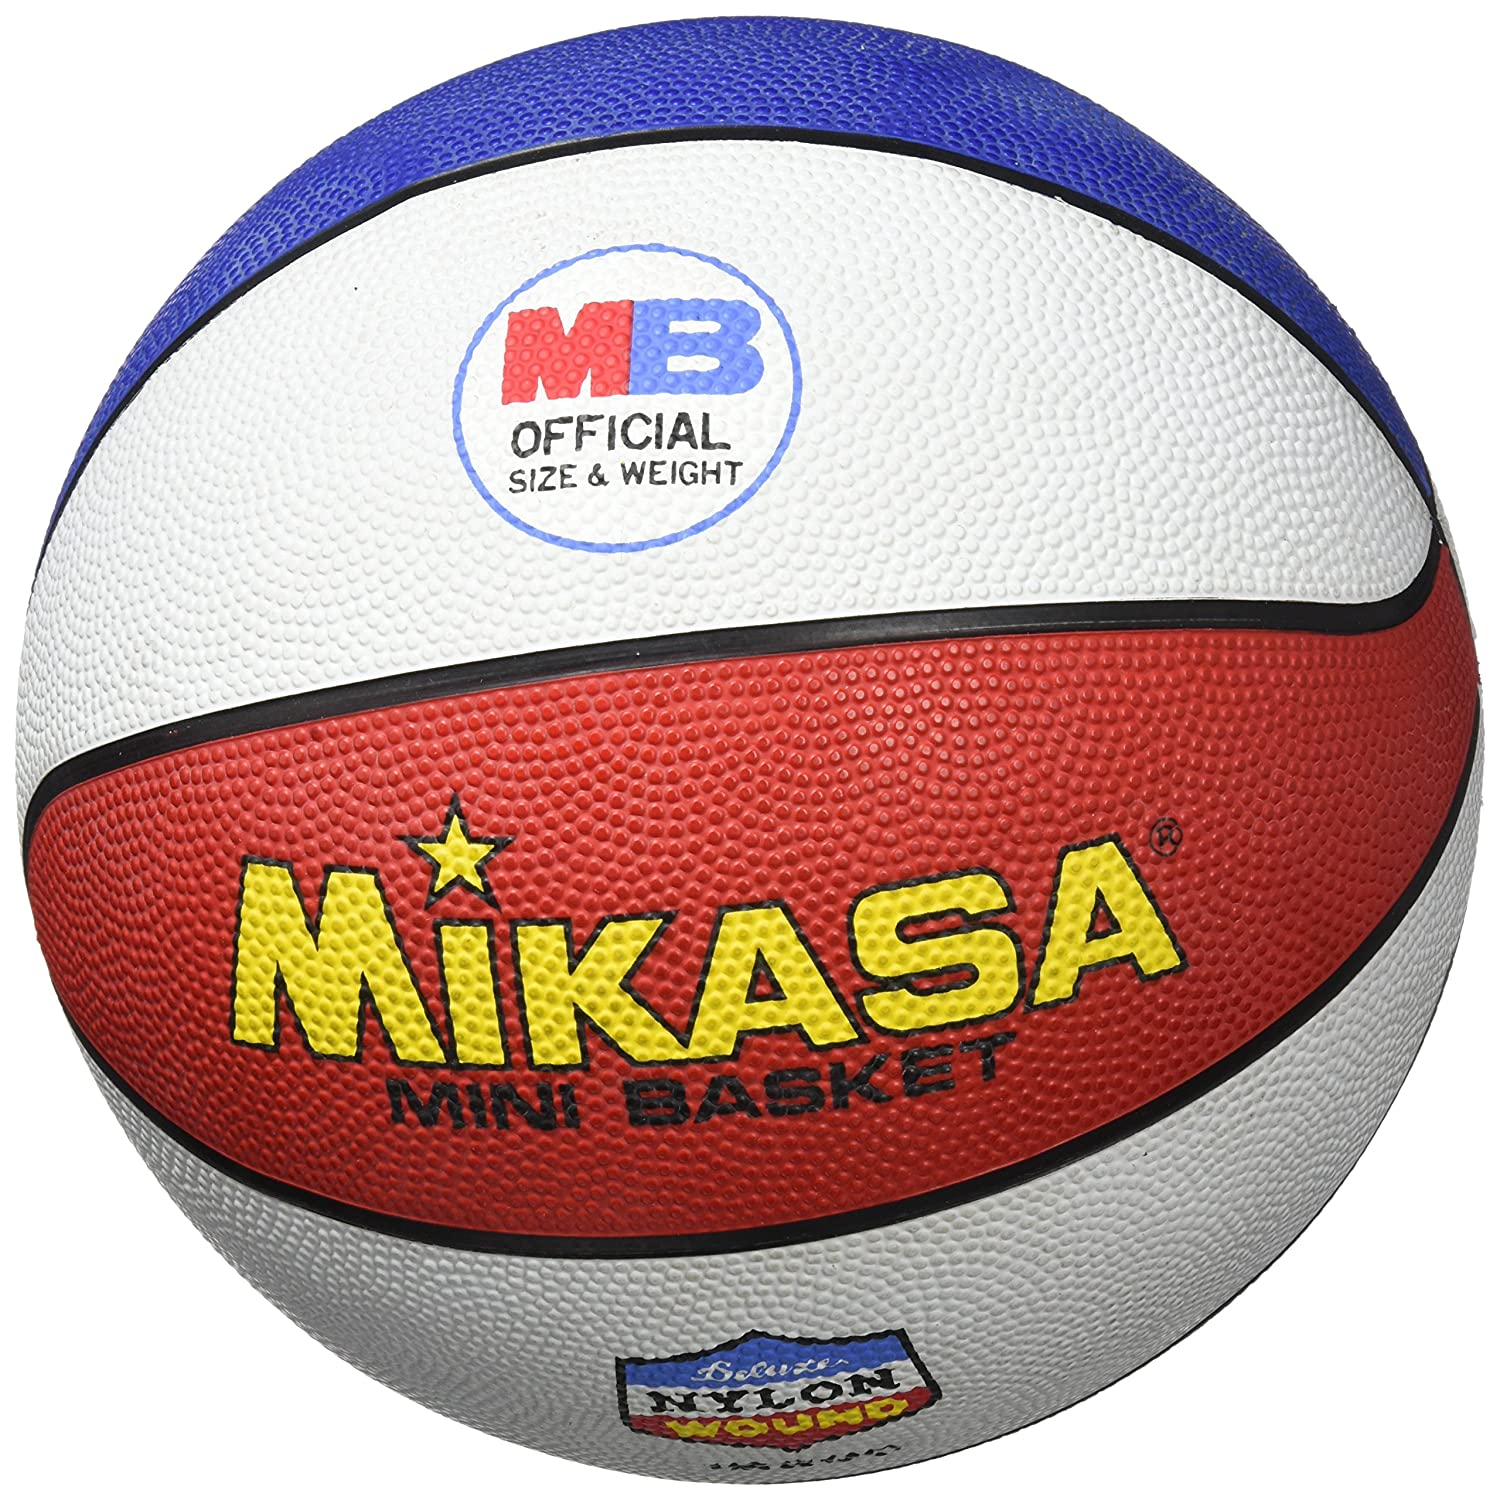 Mikasa 1220-C Balón de baloncesto, Multicolor, talla 5: Amazon.es ...